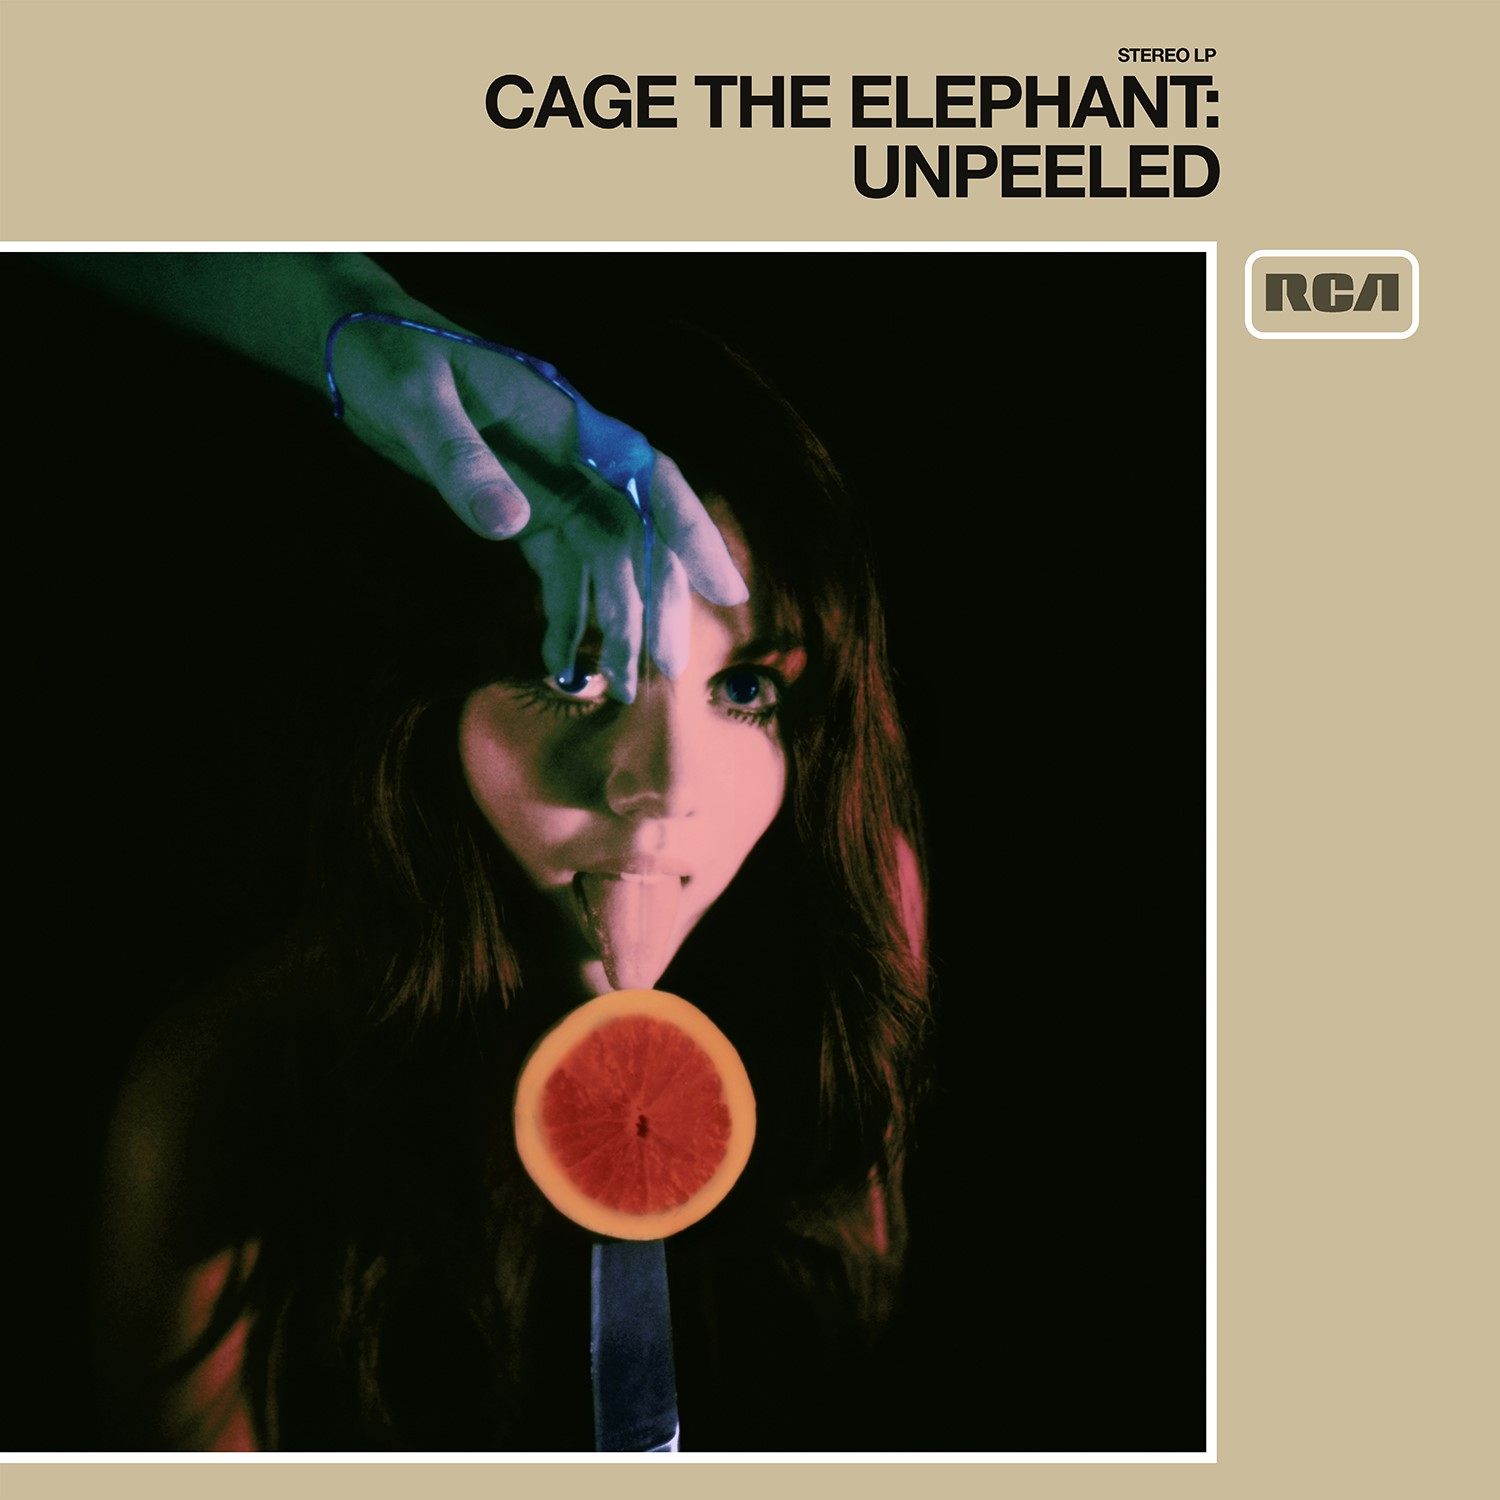 New Albums By Lana Del Rey Cage The Elephant And Alice Cooper